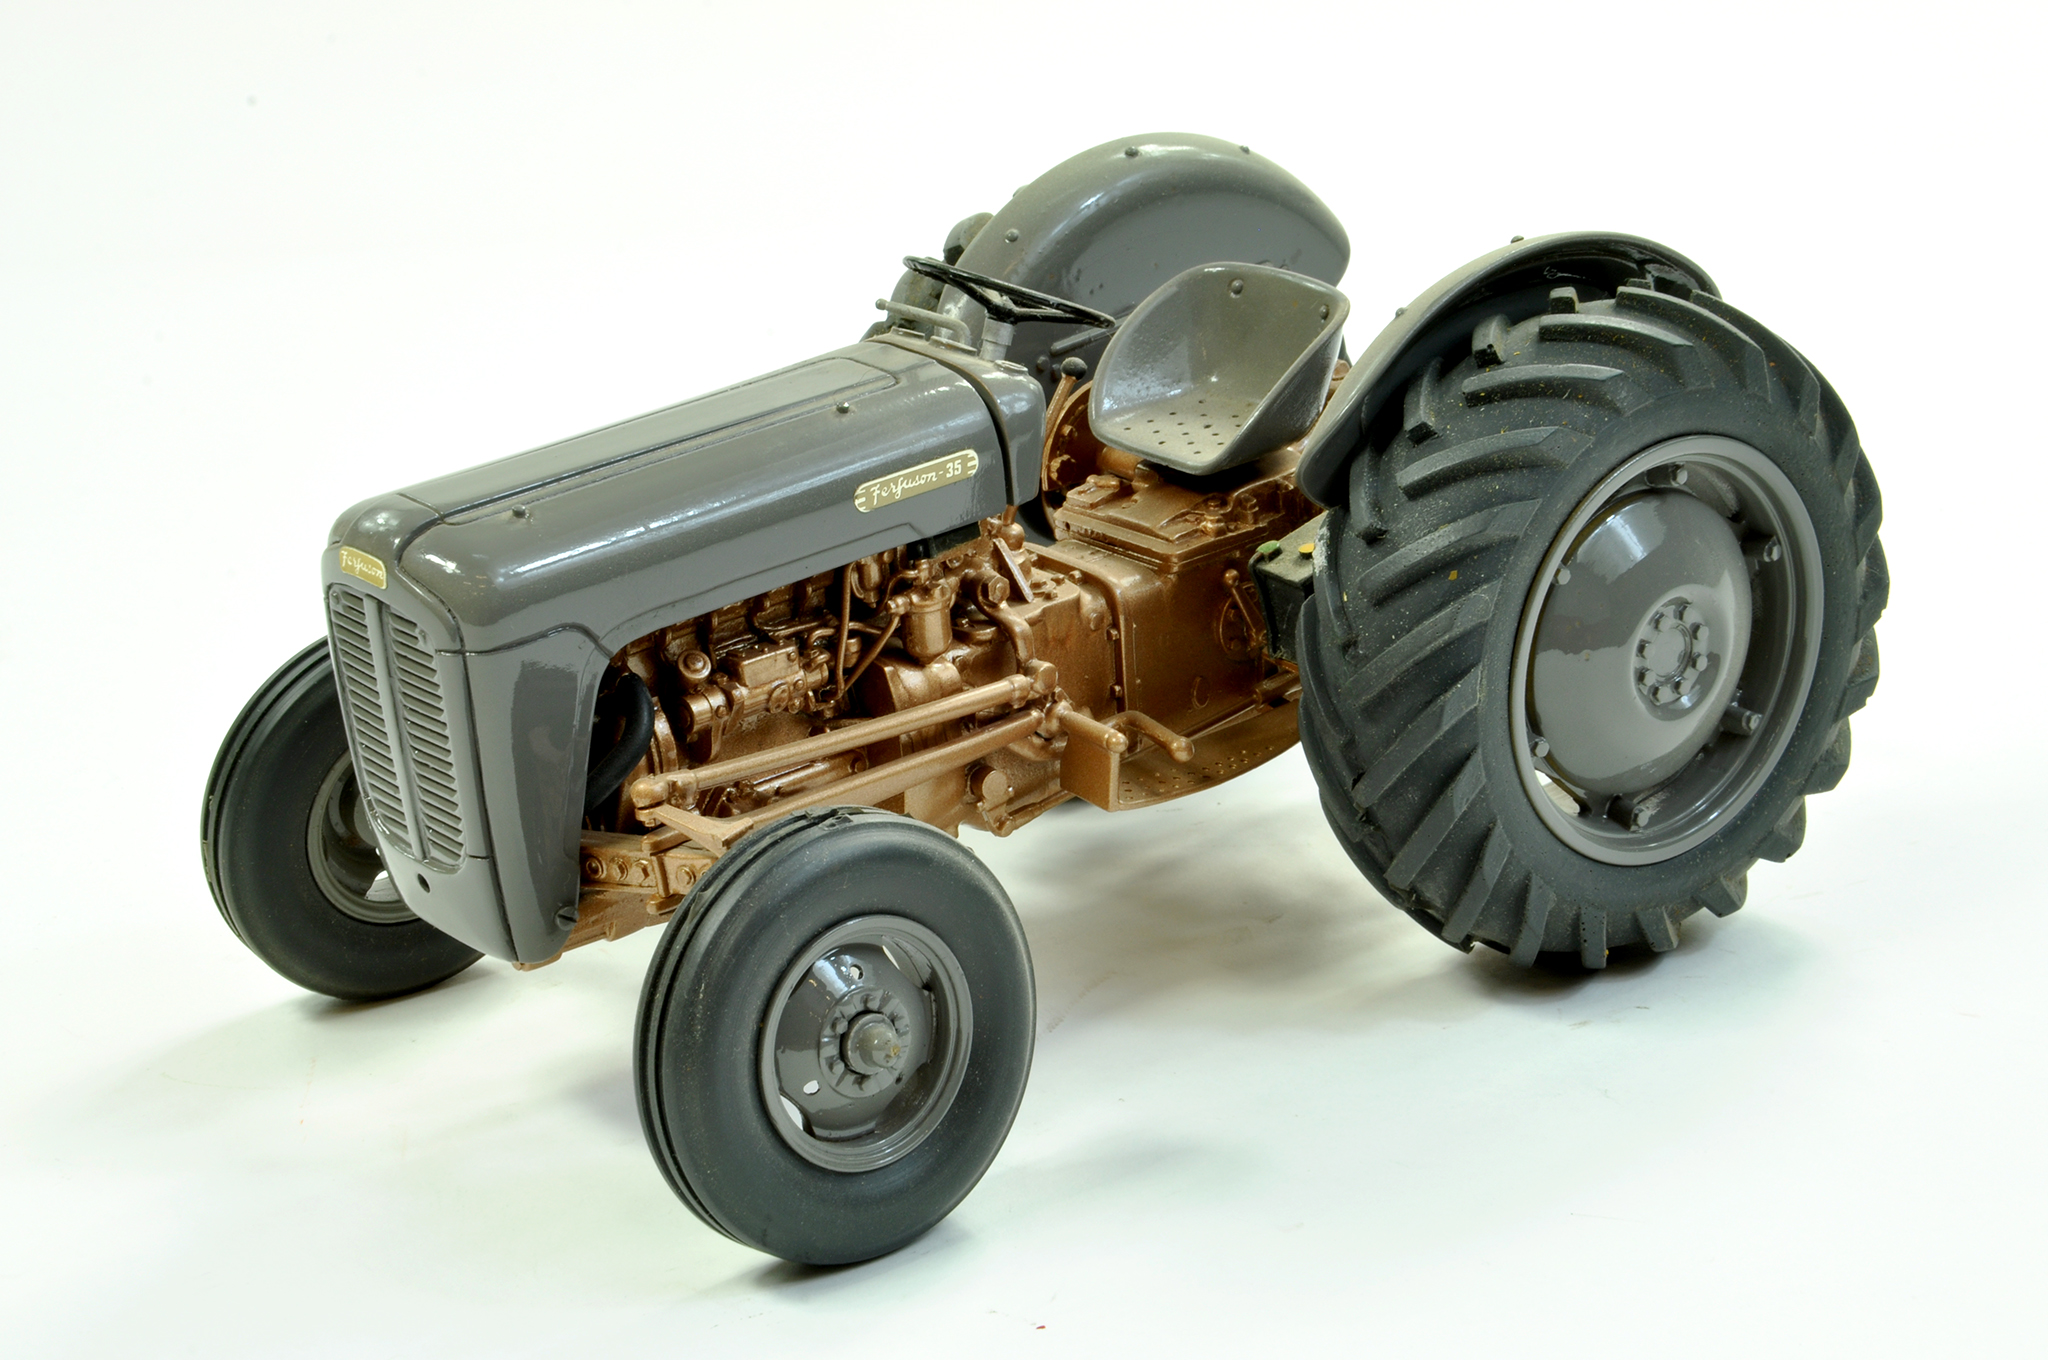 Lot 44 - Tractoys (France) 1/16 Resin and White Metal Farm Issue comprising Ferguson 35 TVO Tractor in Grey